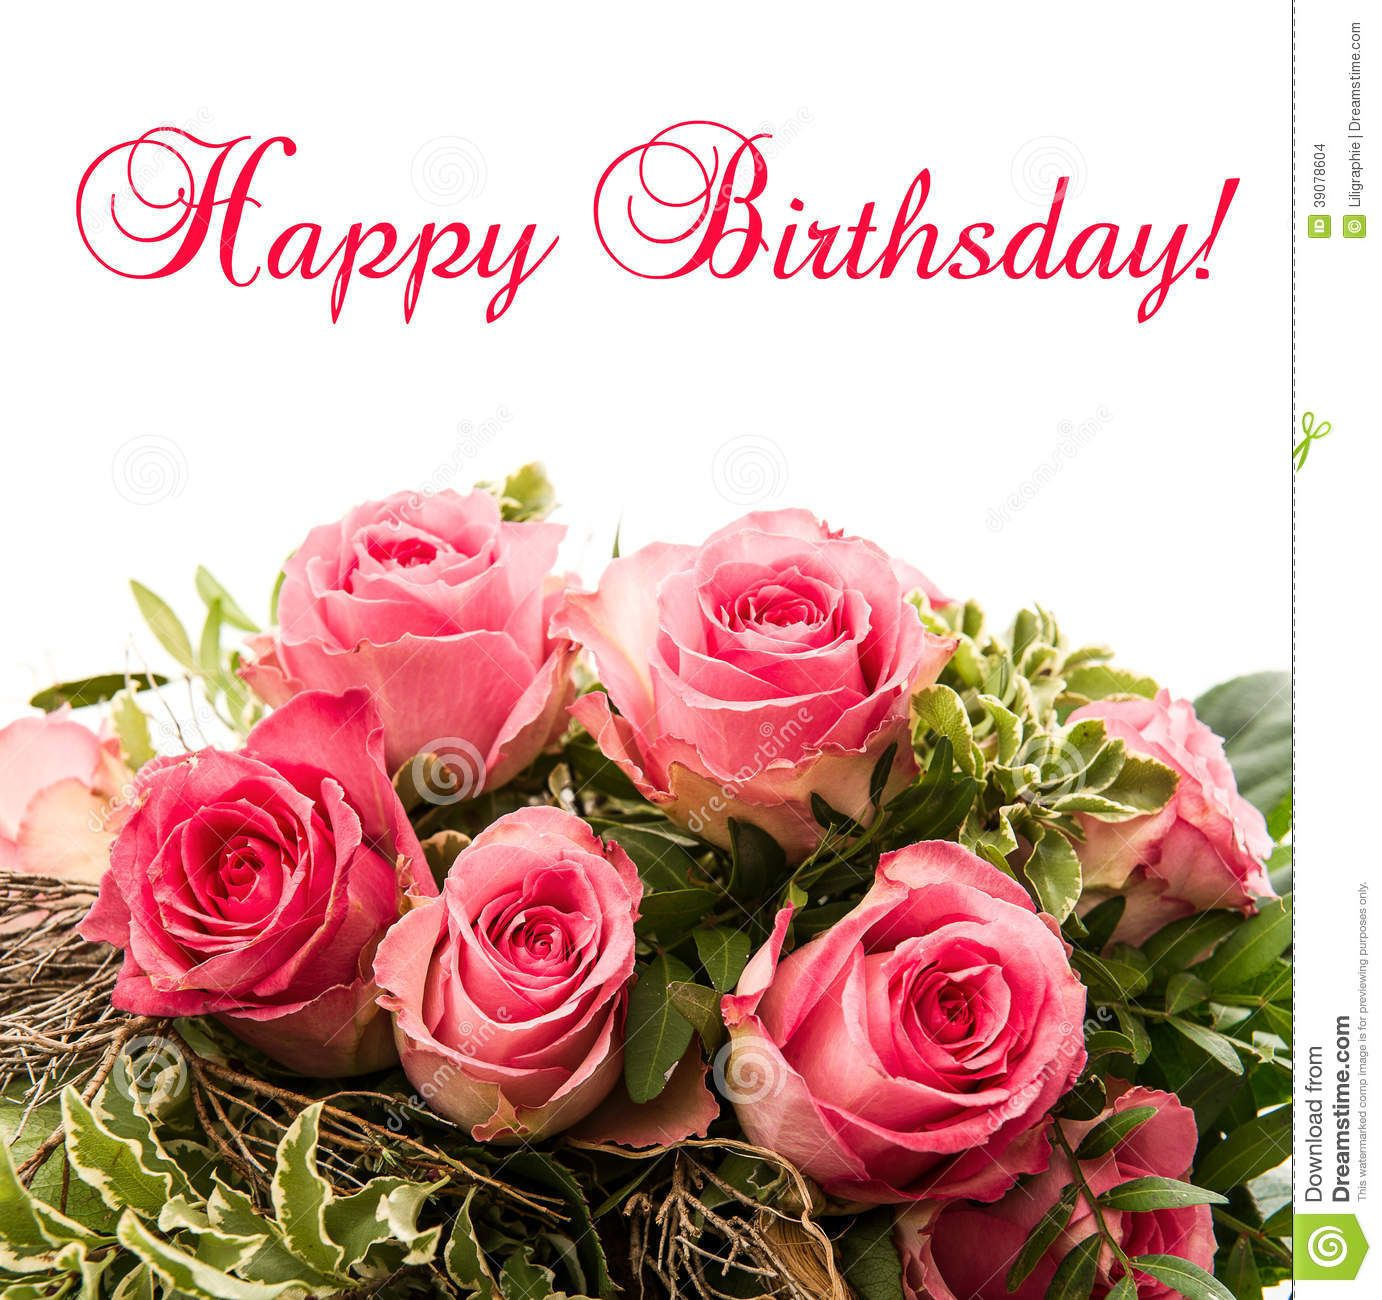 Roses bouquet card happy birthday stock photos 525 roses bouquet roses bouquet card happy birthday stock photos 525 roses bouquet izmirmasajfo